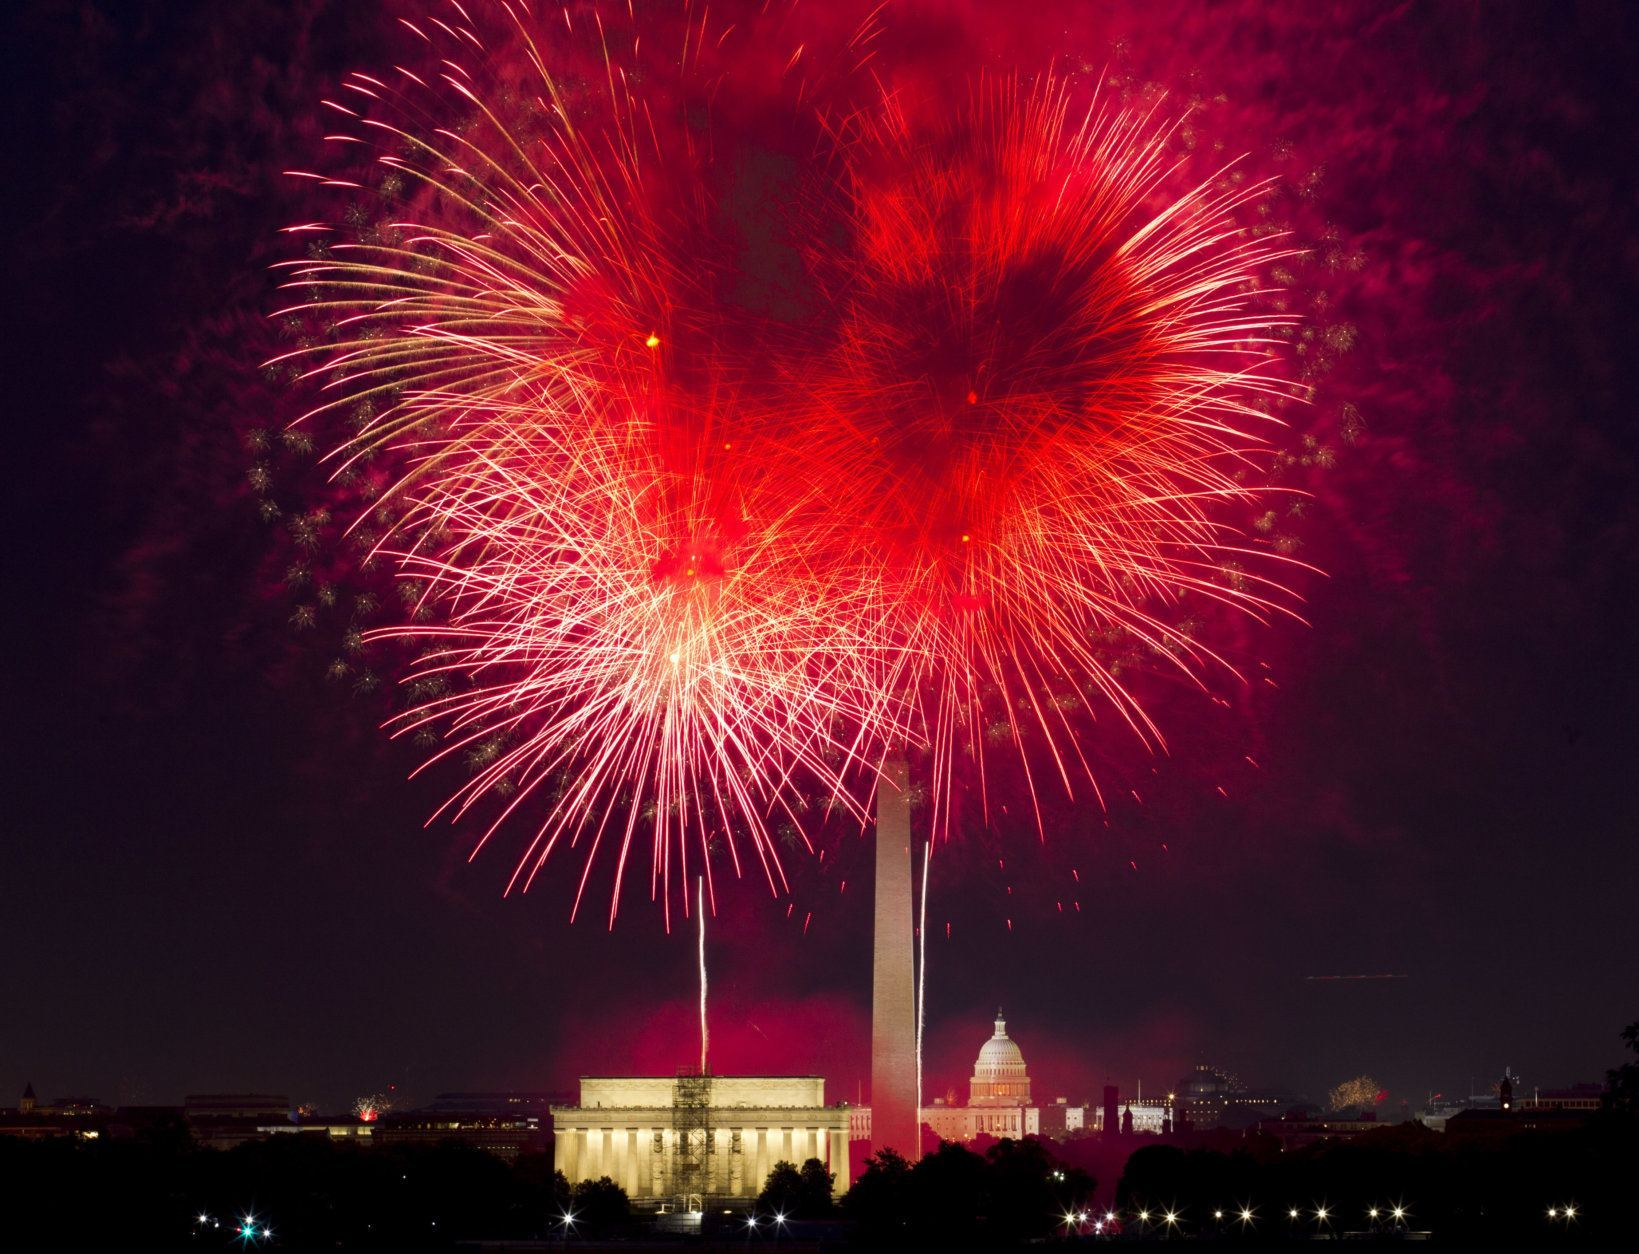 Fireworks explode over Lincoln Memorial, Washington Monument and U.S. Capitol, along the National Mall in Washington, Wednesday, July 4, 2018, during the Fourth of July celebration. (AP Photo/Jose Luis Magana)